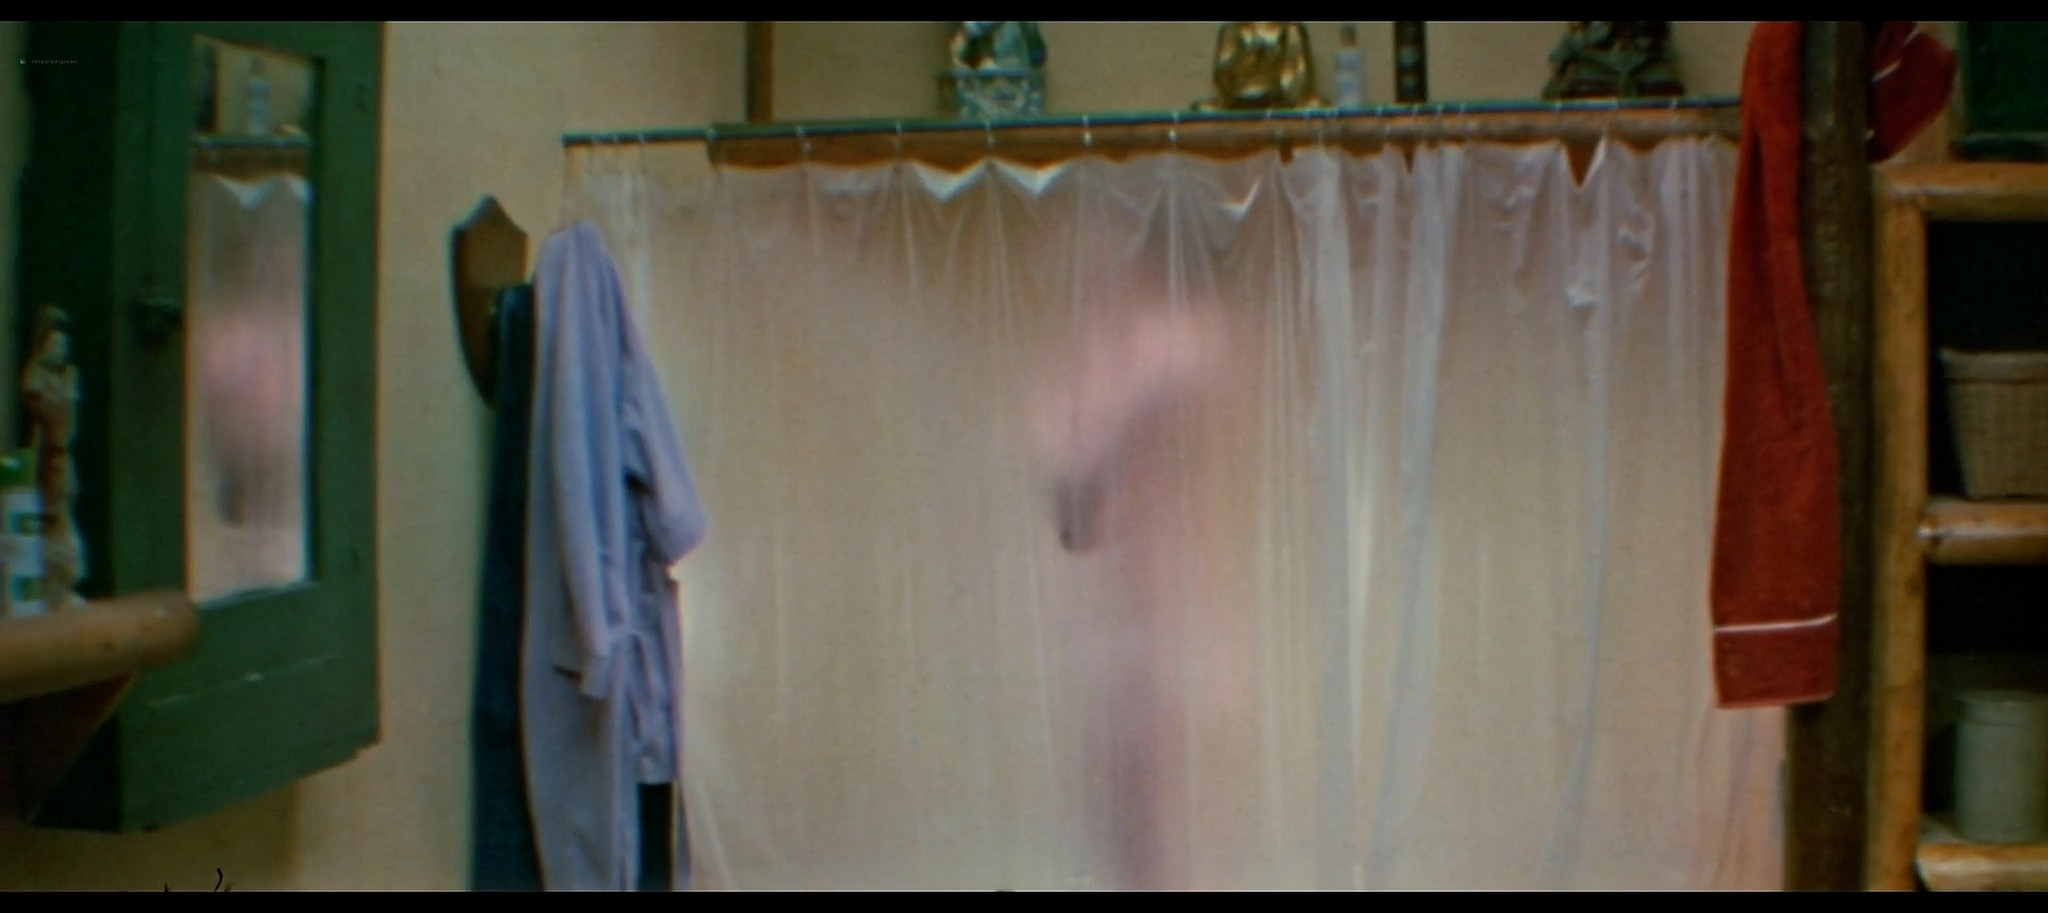 Tracie Savage nude in the shower Friday the 13th Part 3 1982 BluRay 8